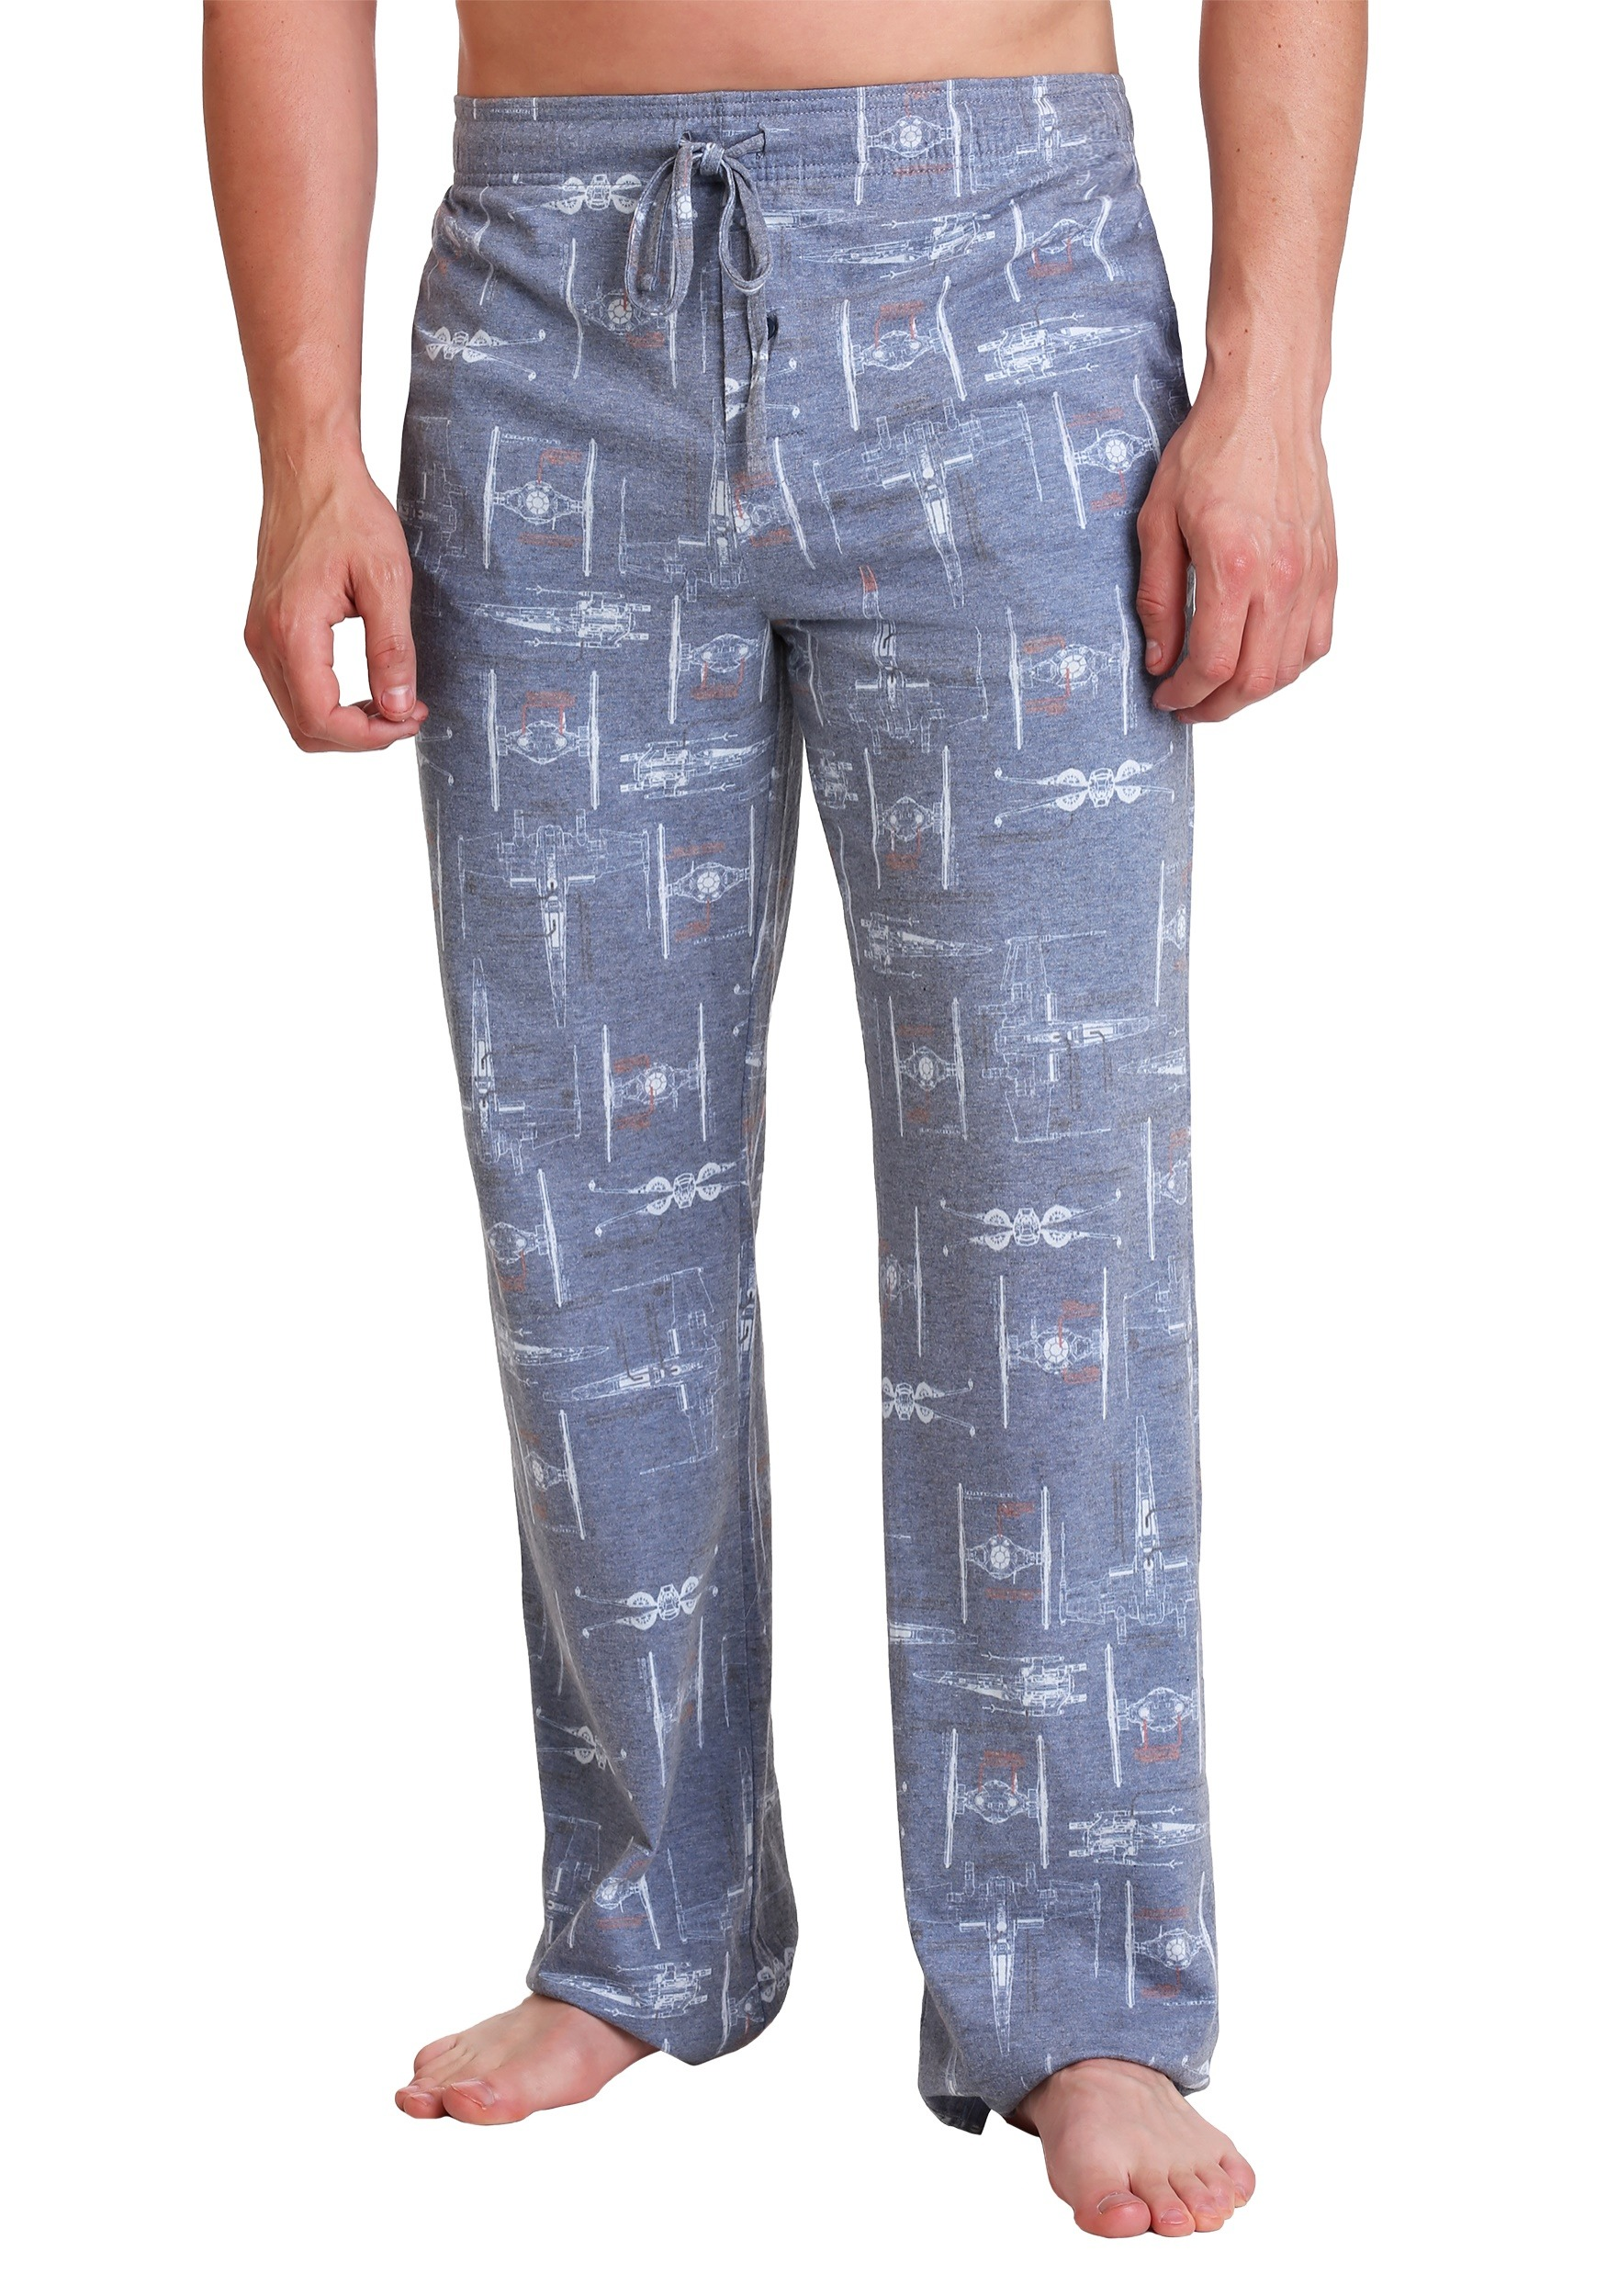 Star Wars X-Wing Schematics Men's Lounge Pants X Wing Schematics on b-wing schematics, at-at schematics, a wing fighter schematics, tie interceptor schematics, minecraft schematics, y-wing schematics, halo warthog schematics,